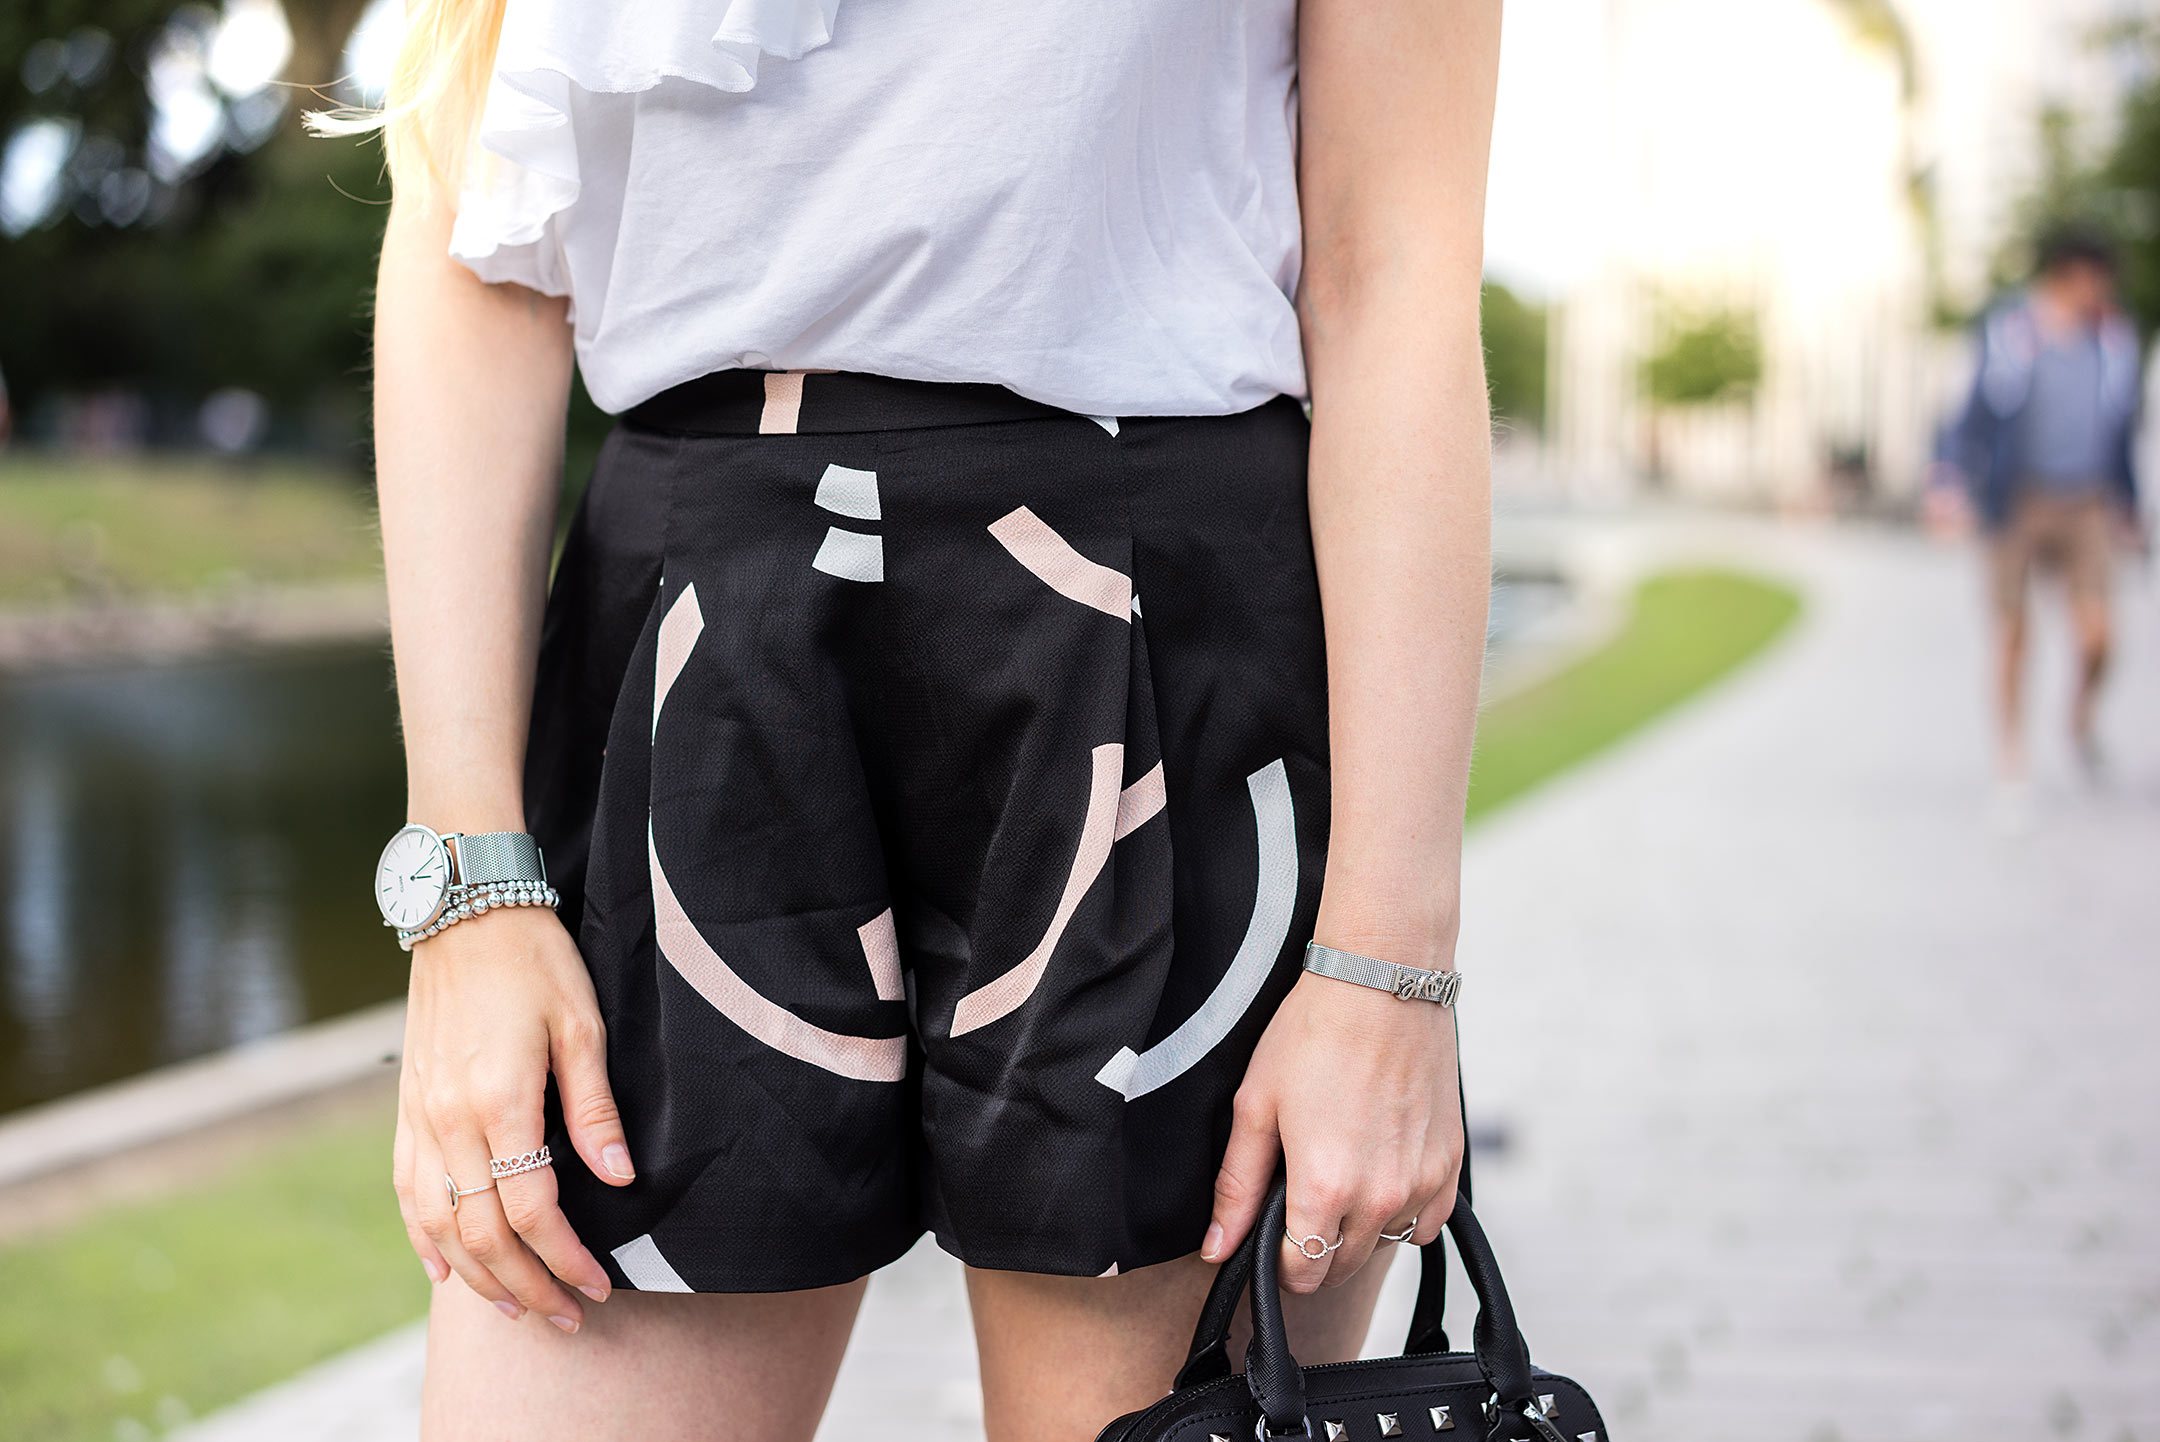 Cameo Collective Shorts Print Outfit Fashion Blog Sunnyinga